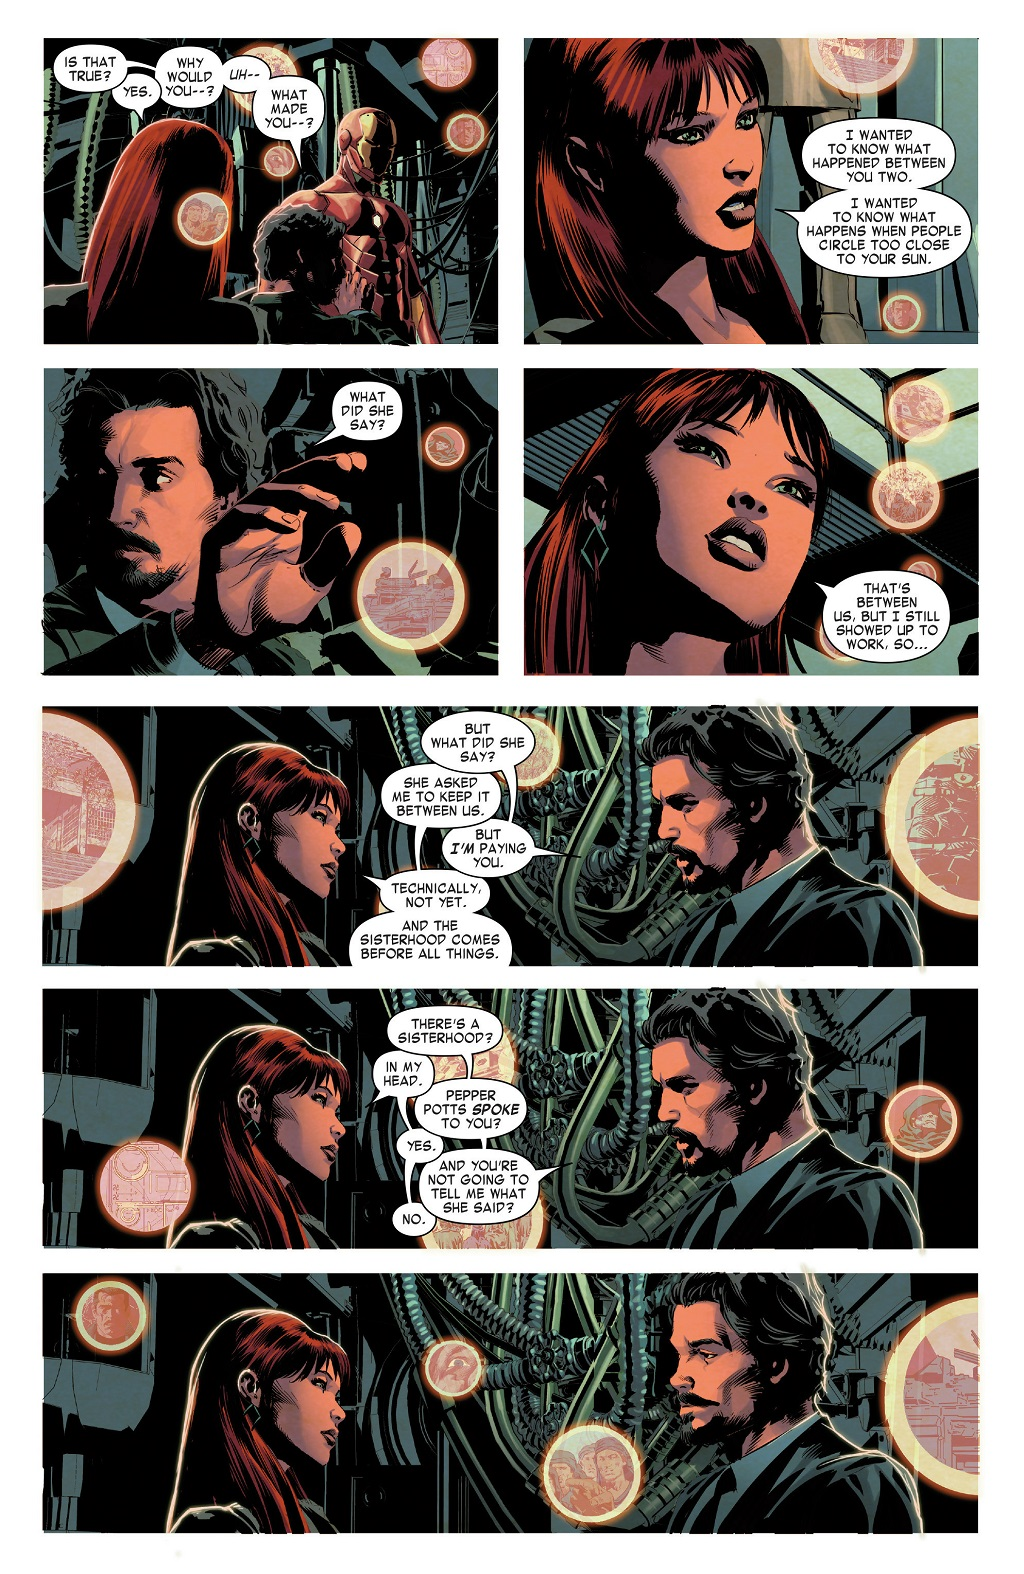 Mary jane watson dating tony stark